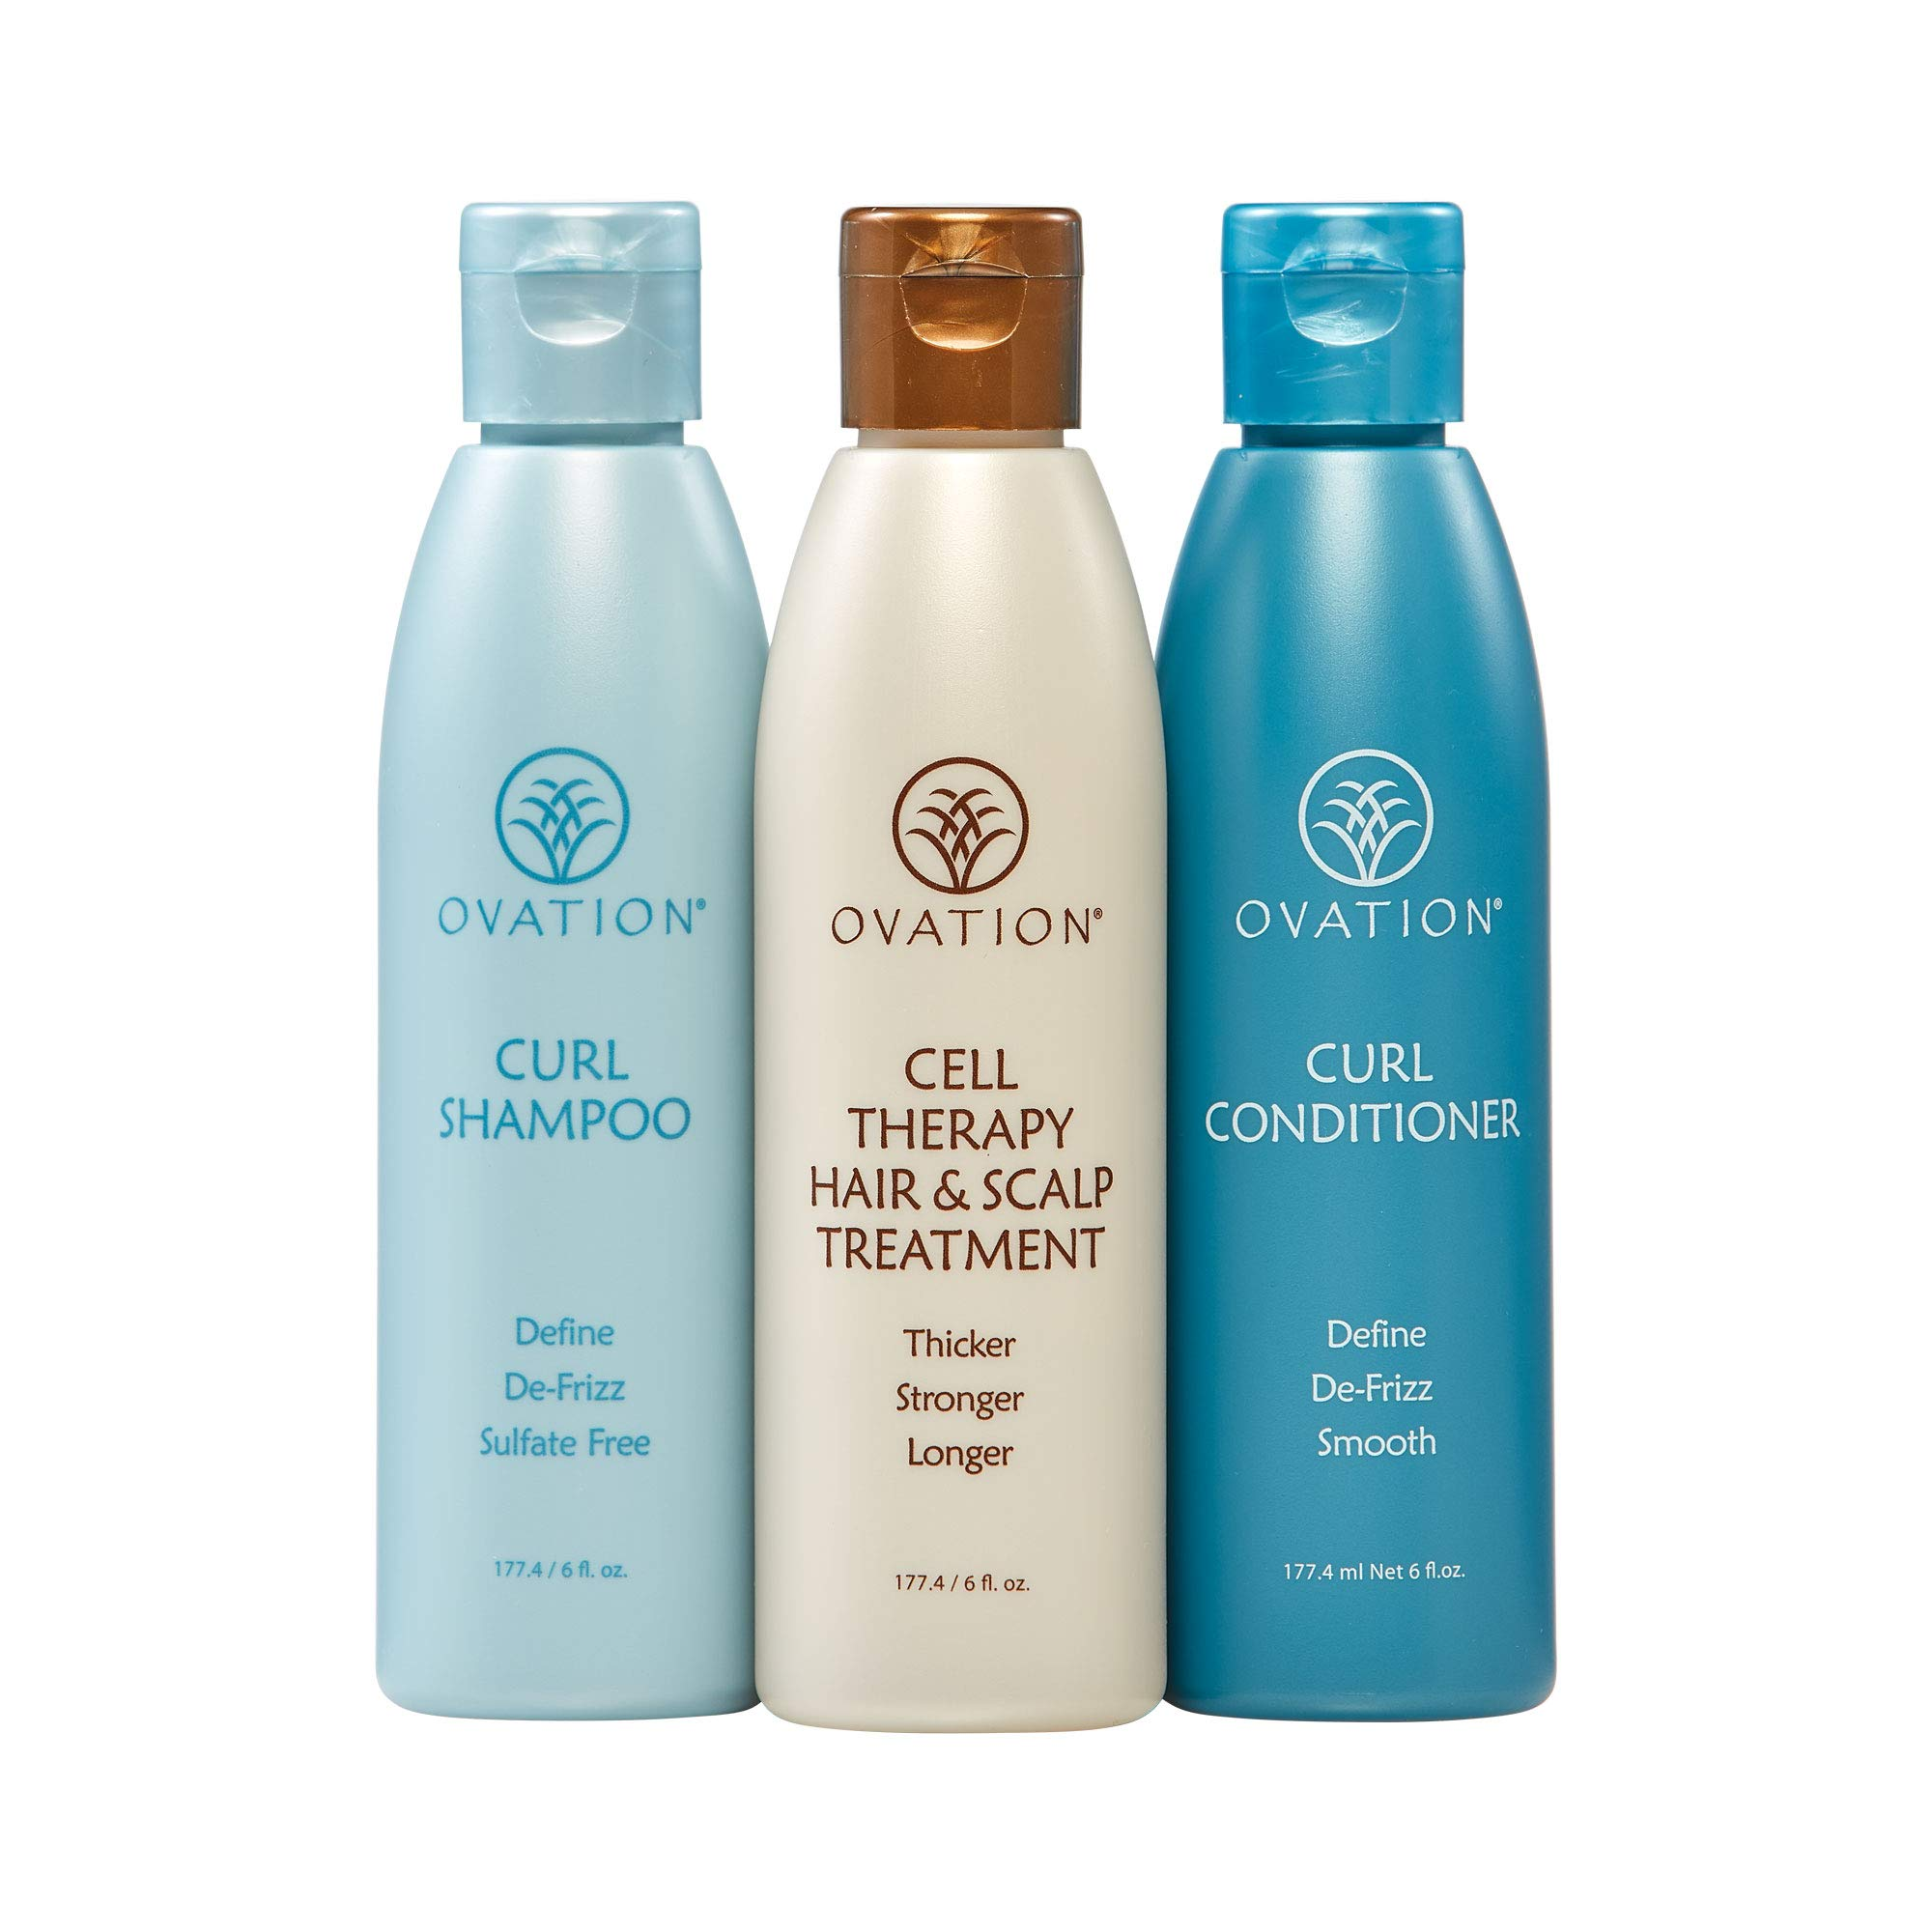 Ovation Curl Cell Therapy System - Salon Quality - Get Stronger, Fuller & Healthier Looking Hair with Natural Ingredients. Includes Curl Therapy Treatment Shampoo and Curl Conditioner. Made in the USA